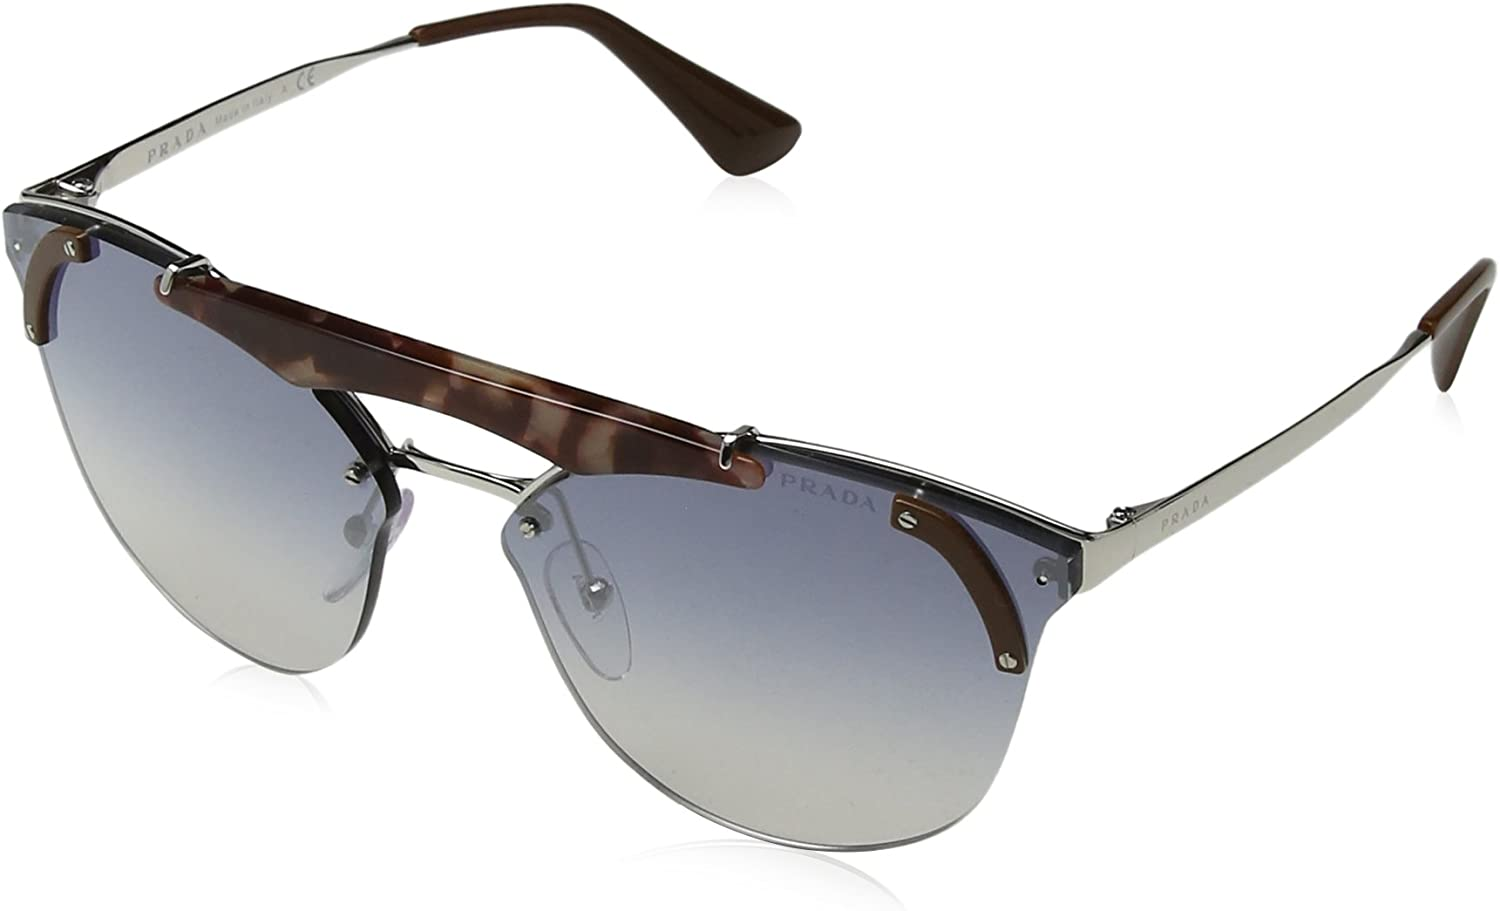 Prada 0PR53US C135R0 42 Gafas de sol, Marrón Pink Havana/Brown/Light Blue Silver, Mujer